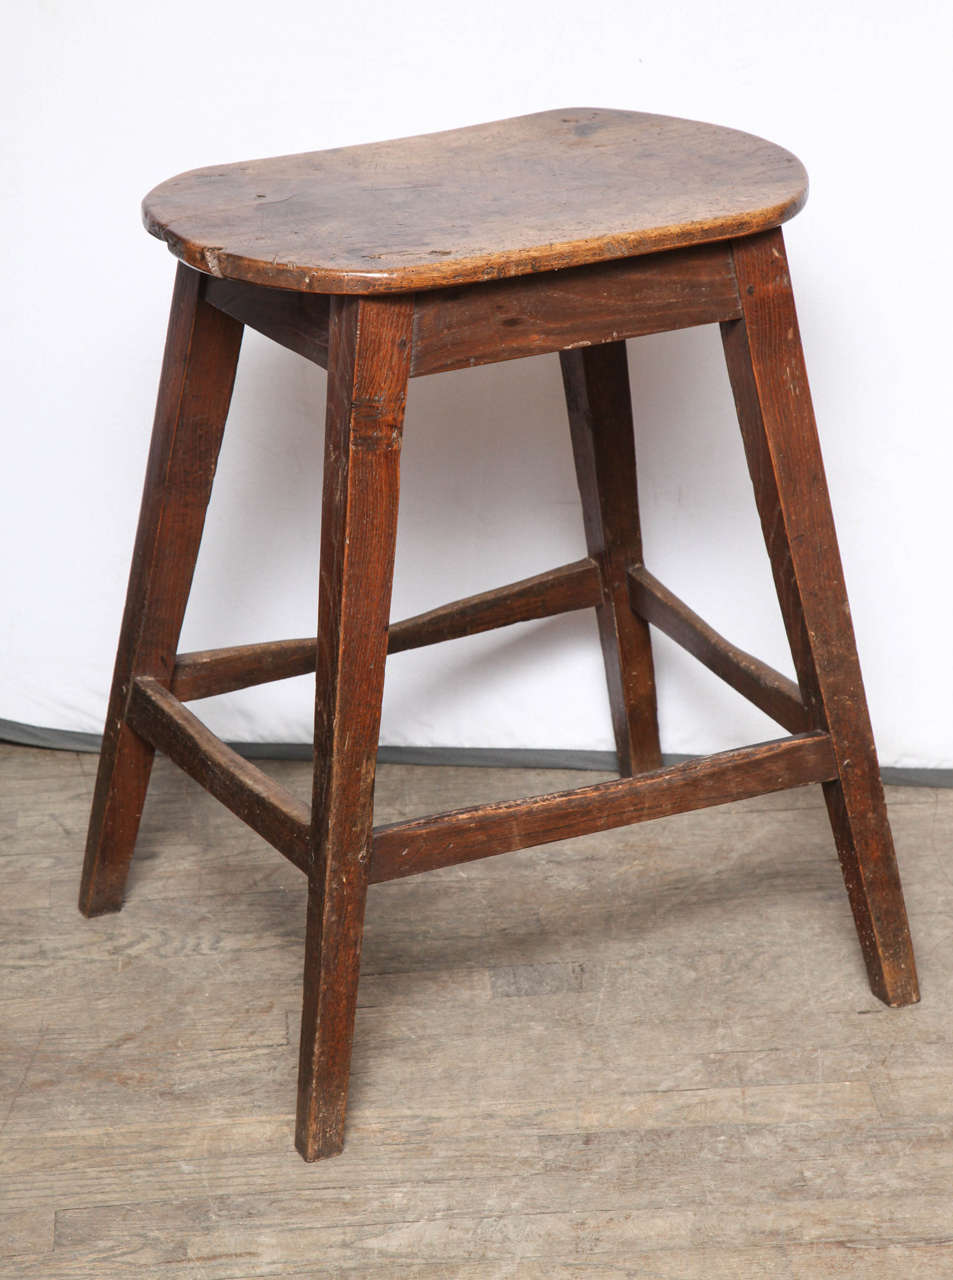 Rare, unusually large kitchen stool. 